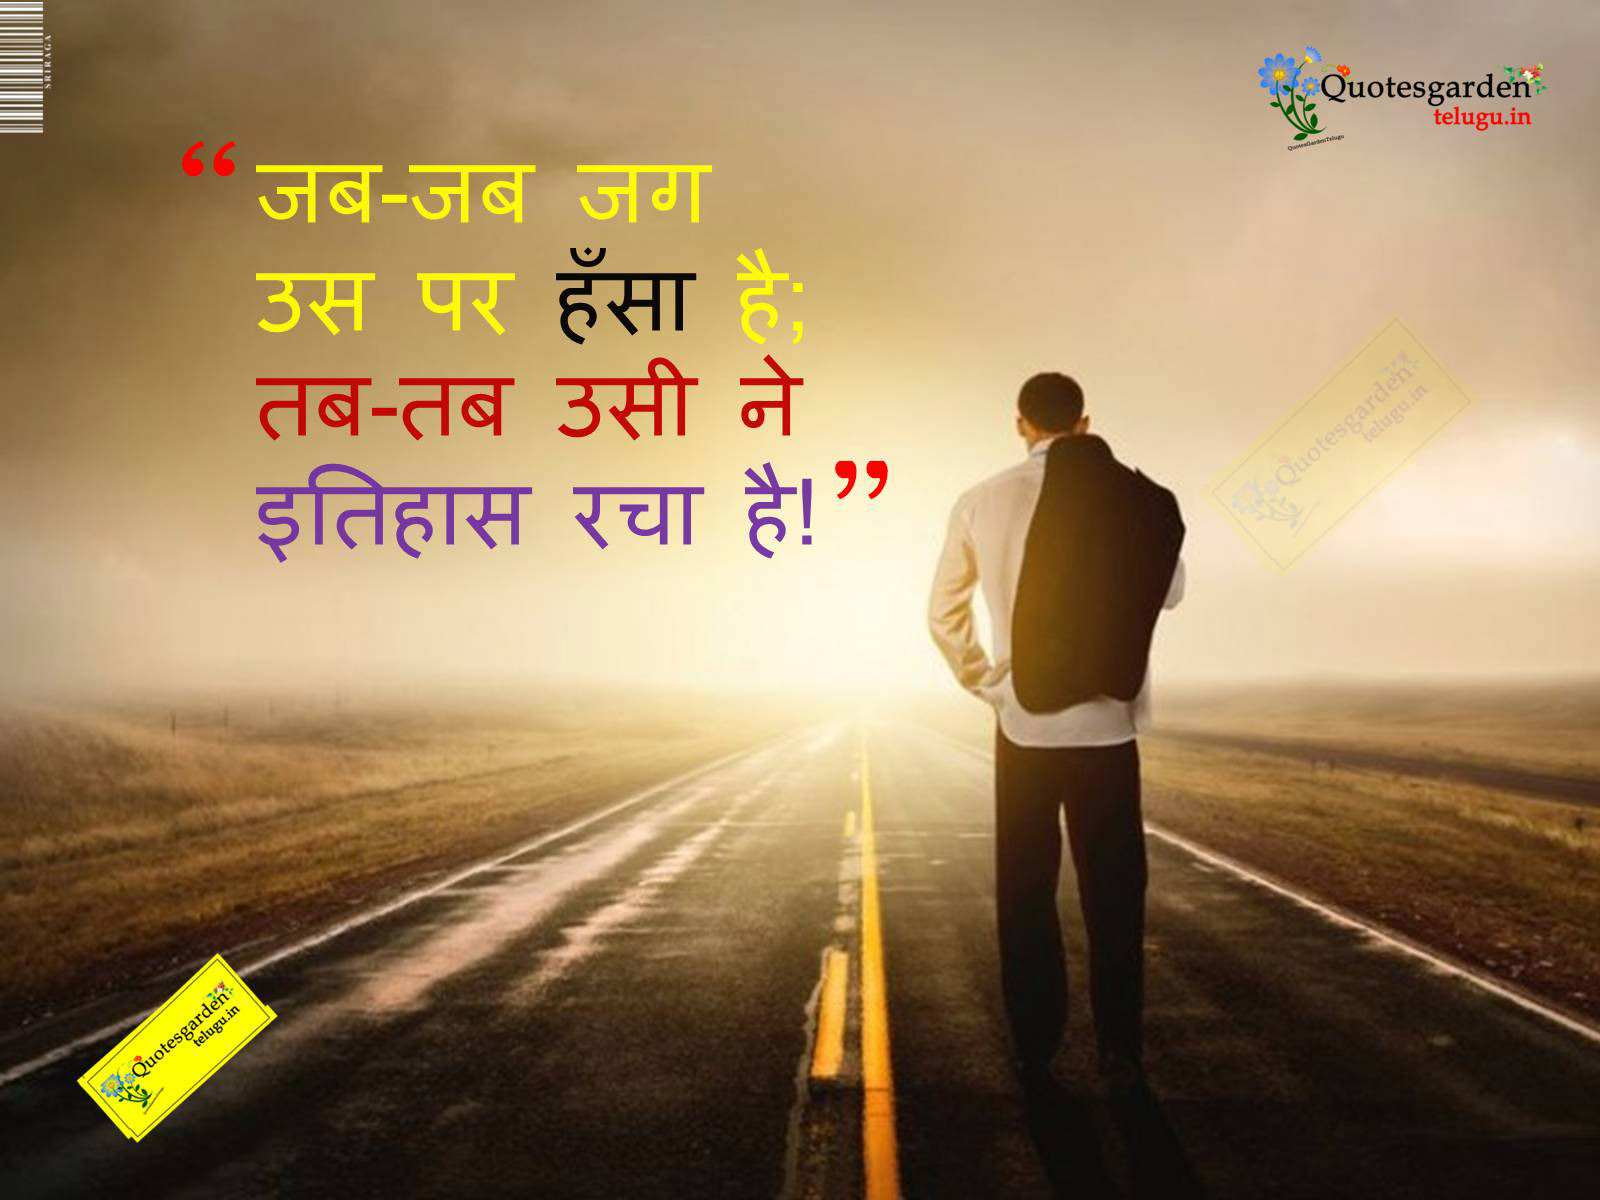 Heart Touching Inspirational Quotes In Hindi 650 Quotes Garden